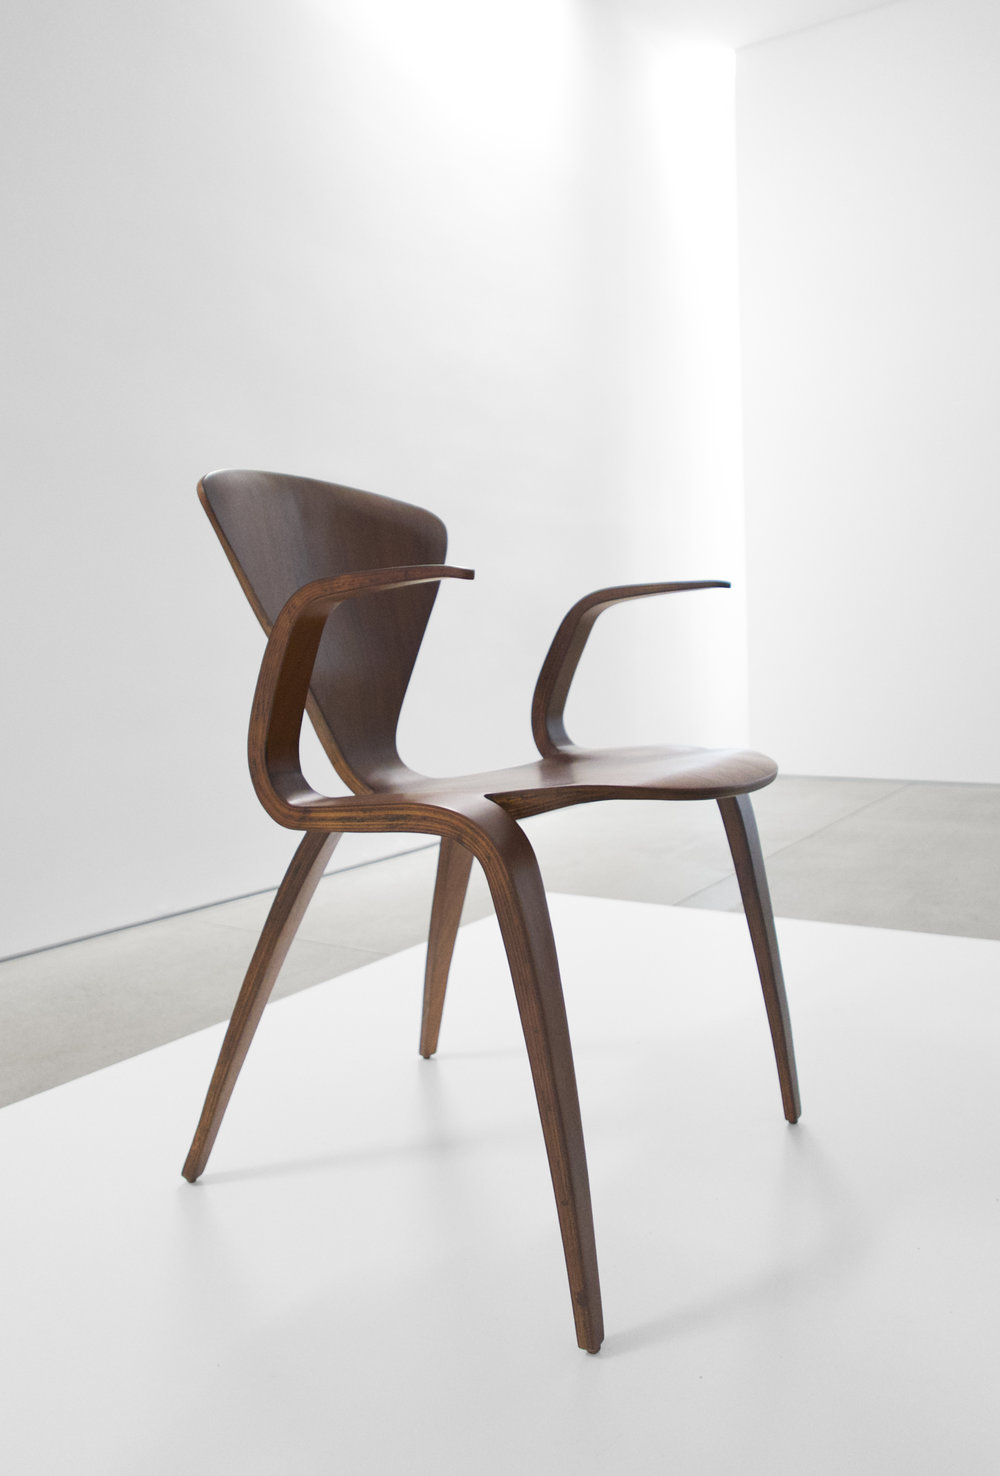 2. Norman Cherner, Rare Prototype Chair, c. 1950, walnut, 30.75H x 23W x 23D inches.jpg